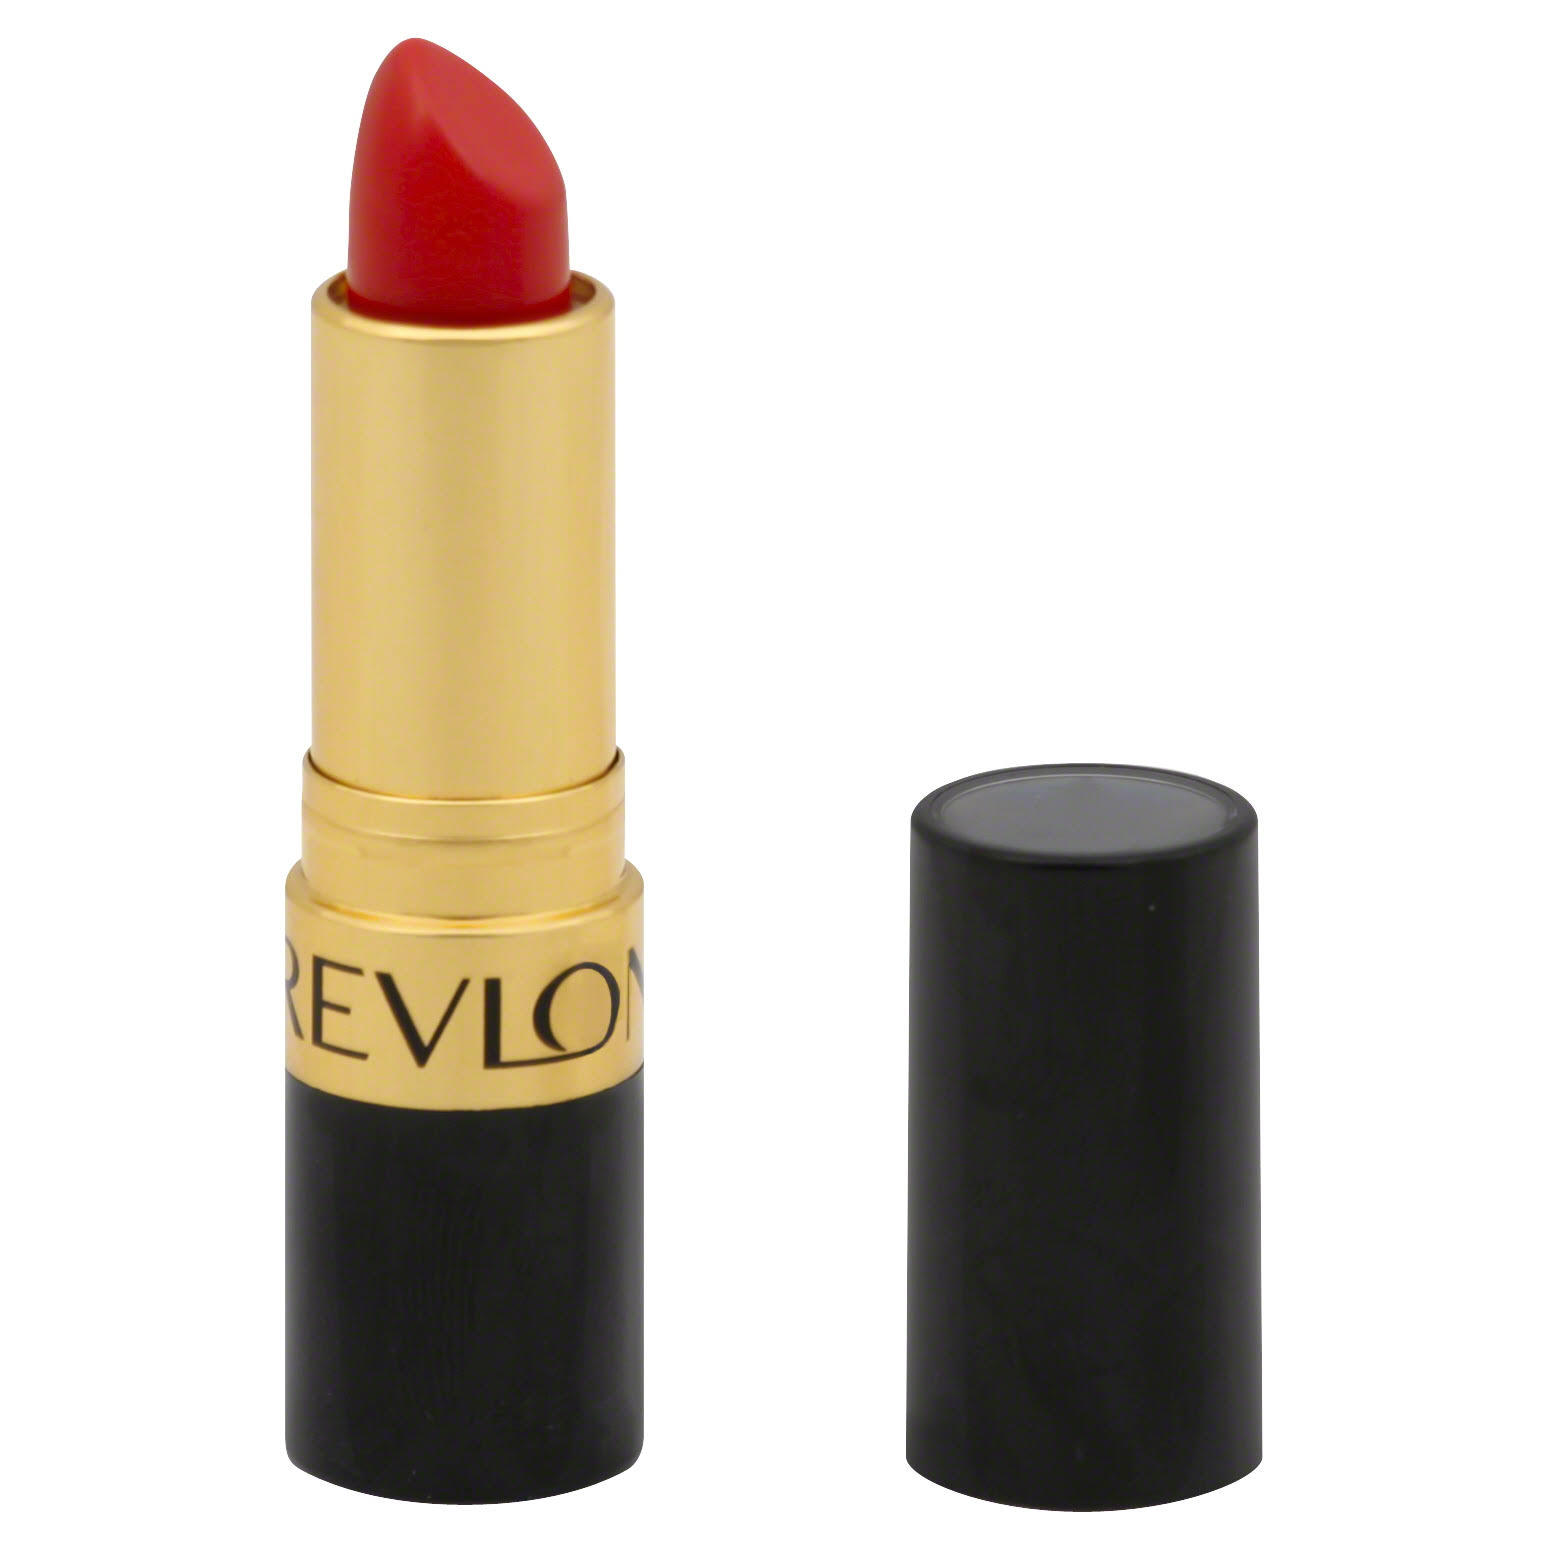 Revlon Super Lustrous Crème Lipstick - 0.15oz, 720 Fire and Ice